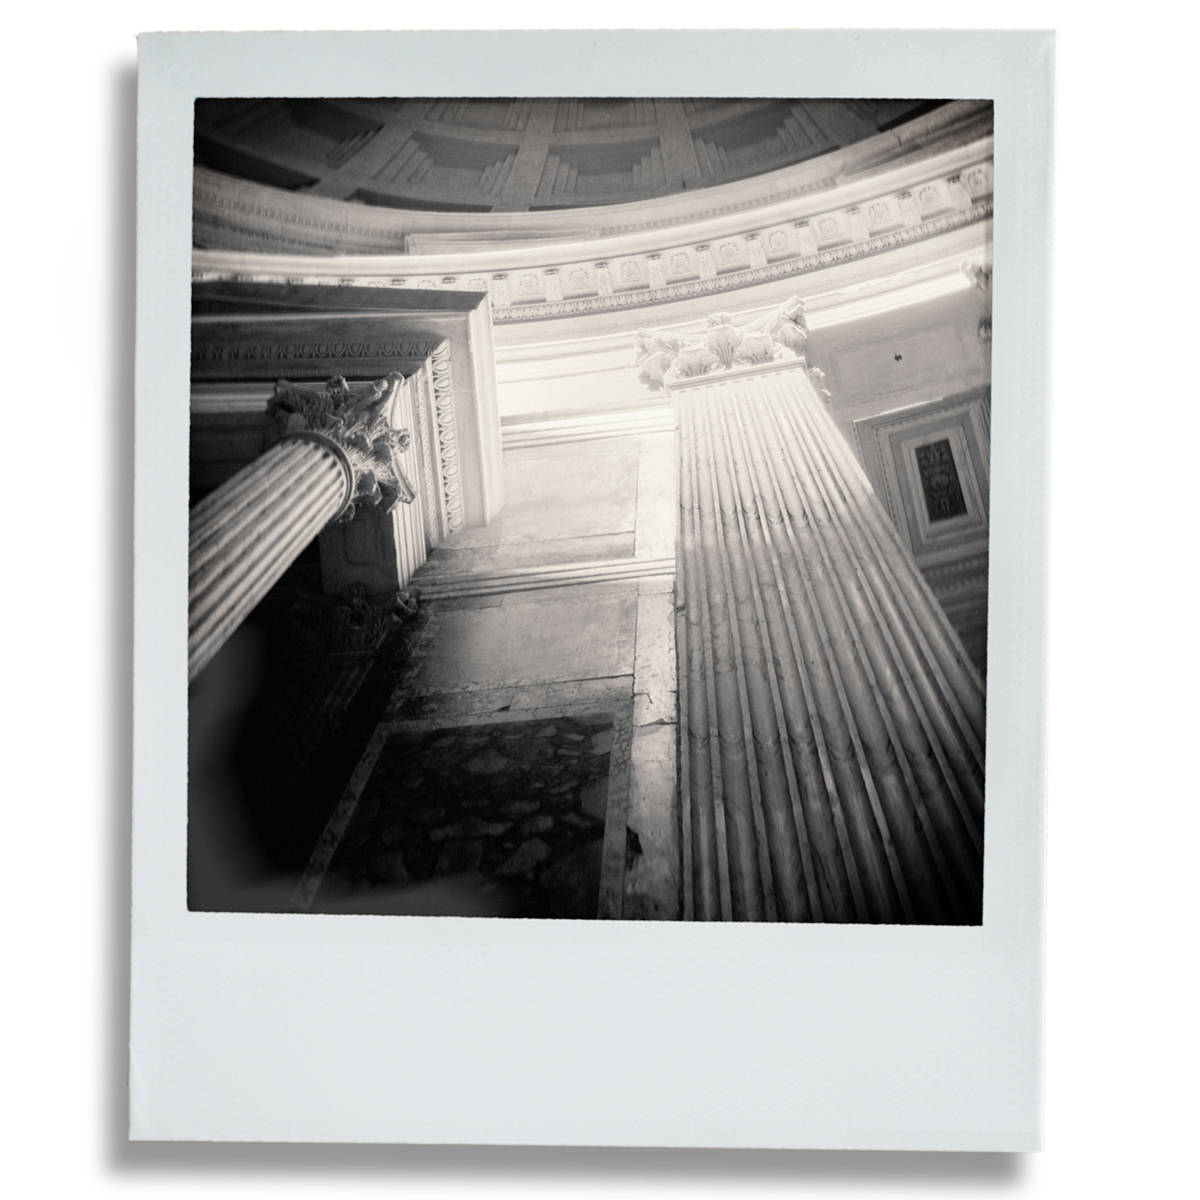 Pantheon, Rome photographed with a vintage Polaroid SX-70 camera using  'Impossible Project' Instant Film